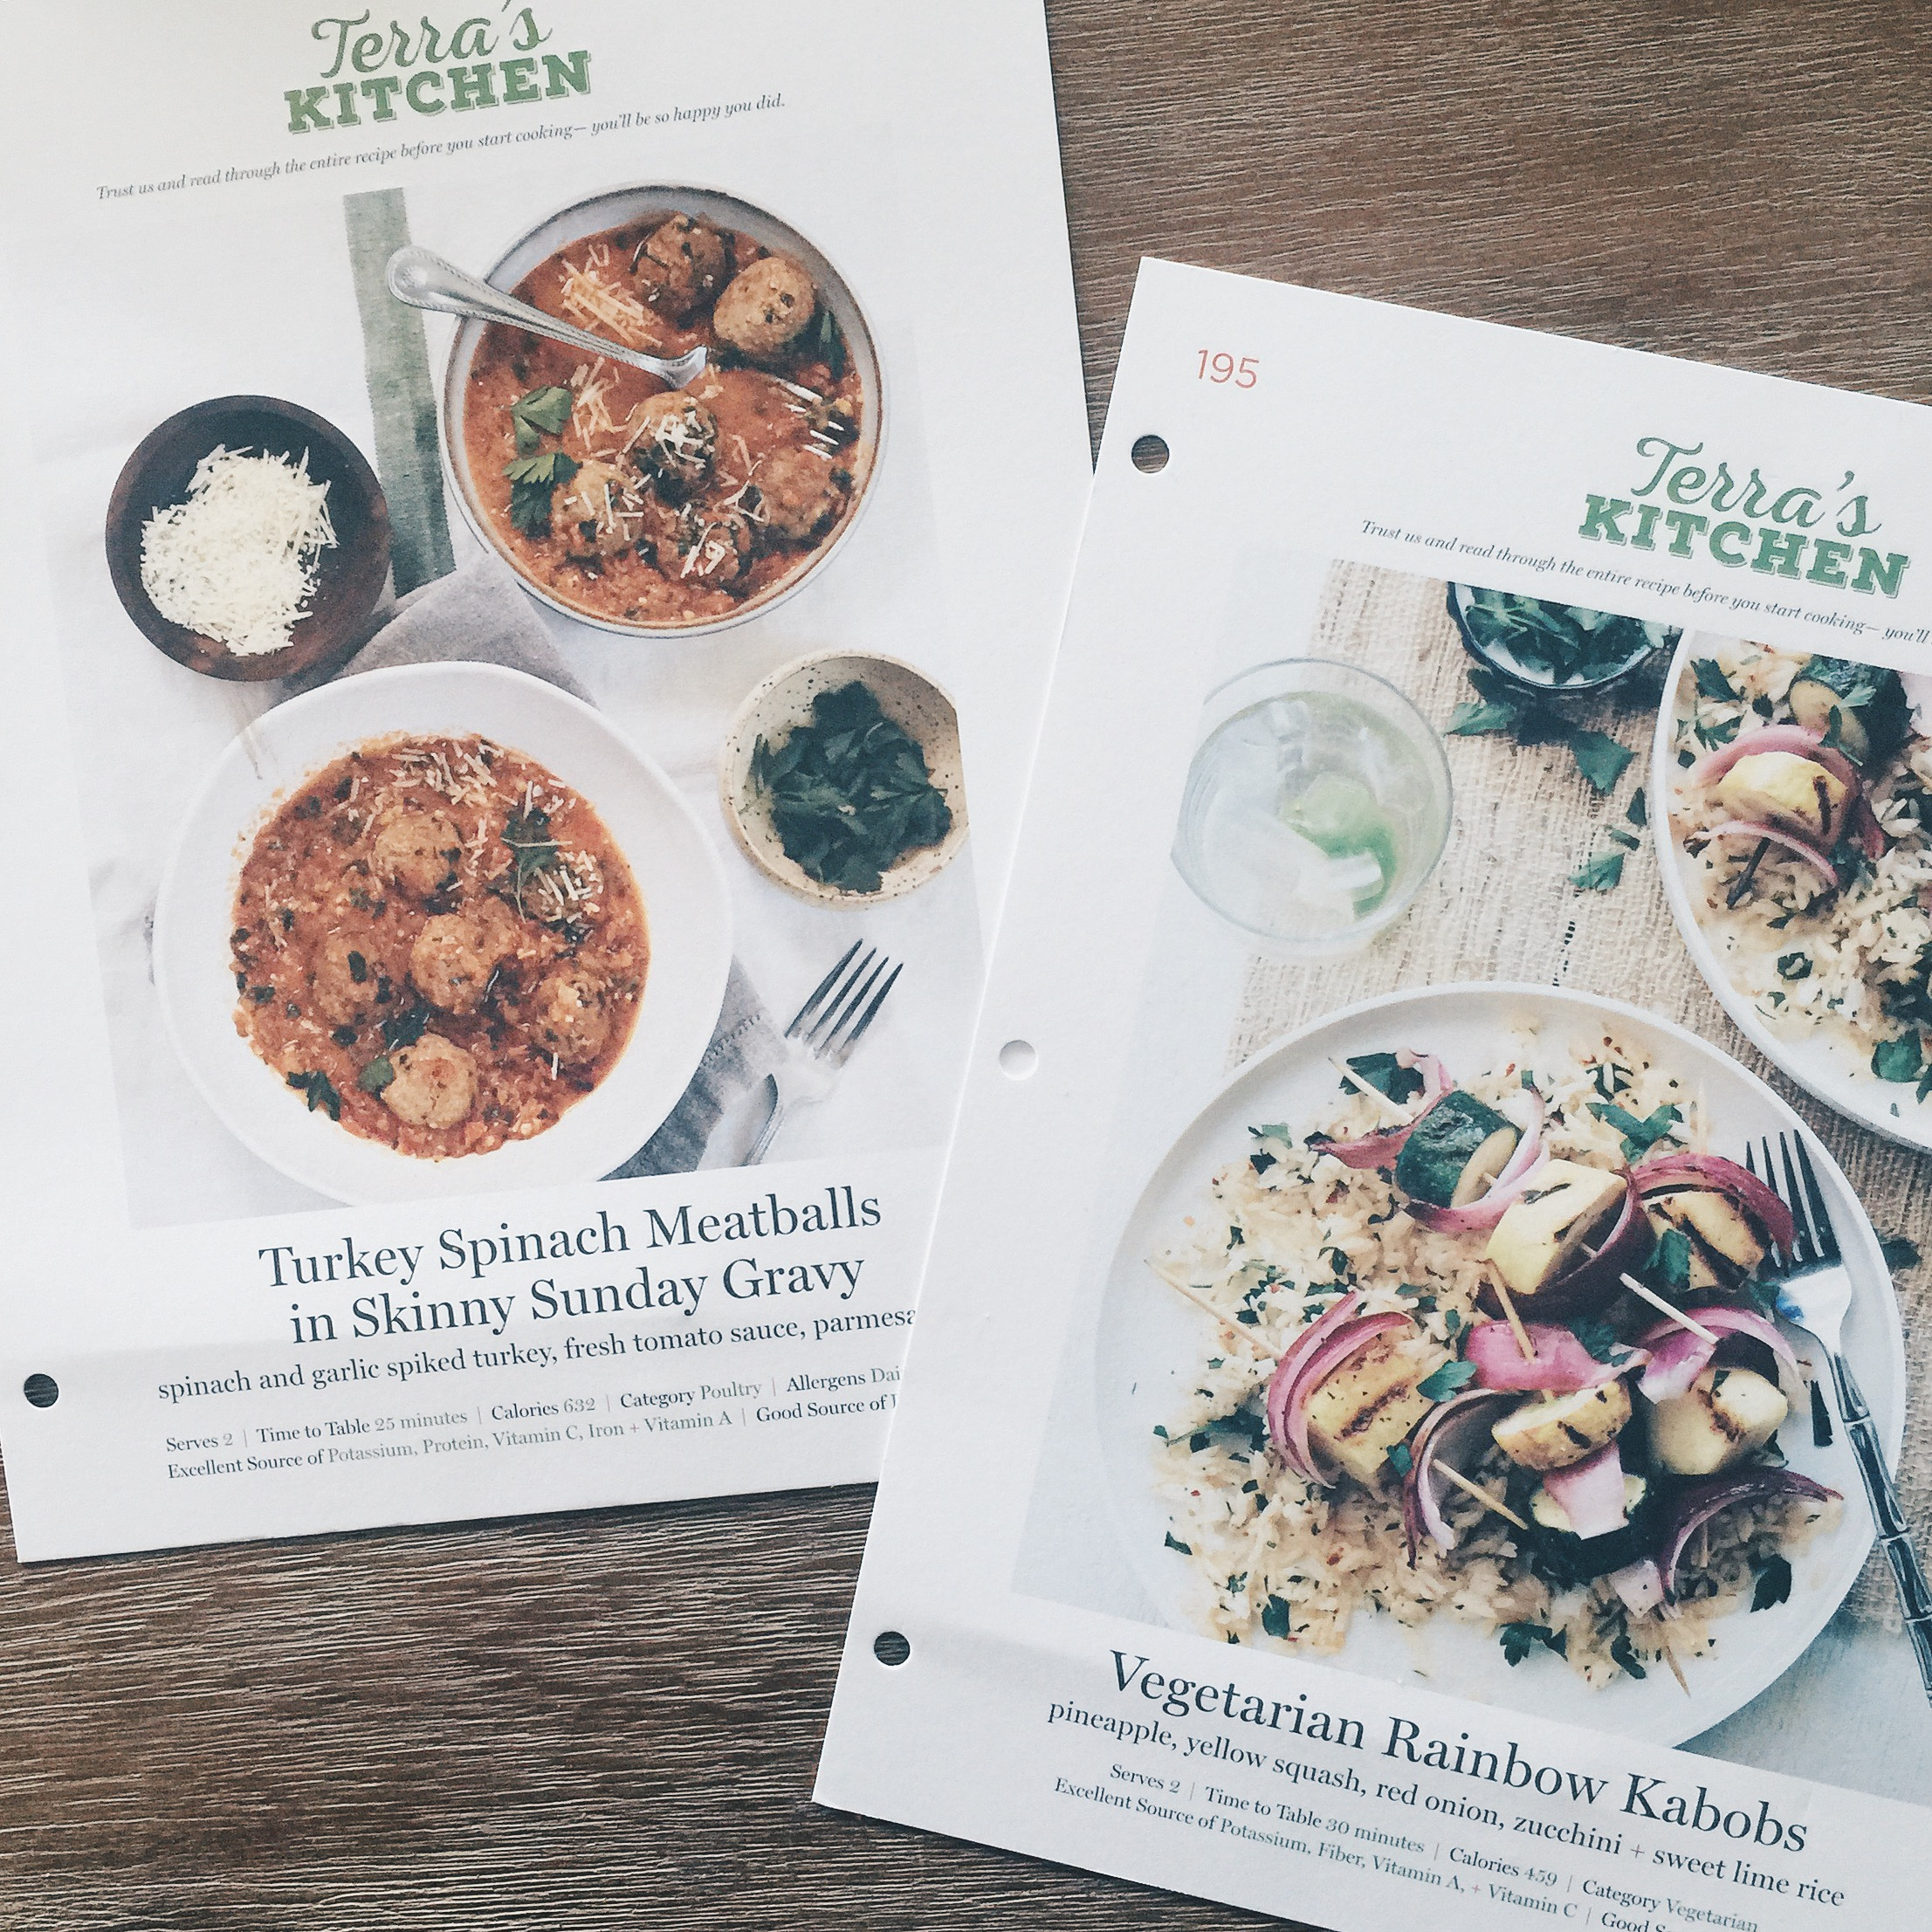 Chelsea Charles Tests Terra's Kitchen Meal Delivery Service via Count Me Healthy